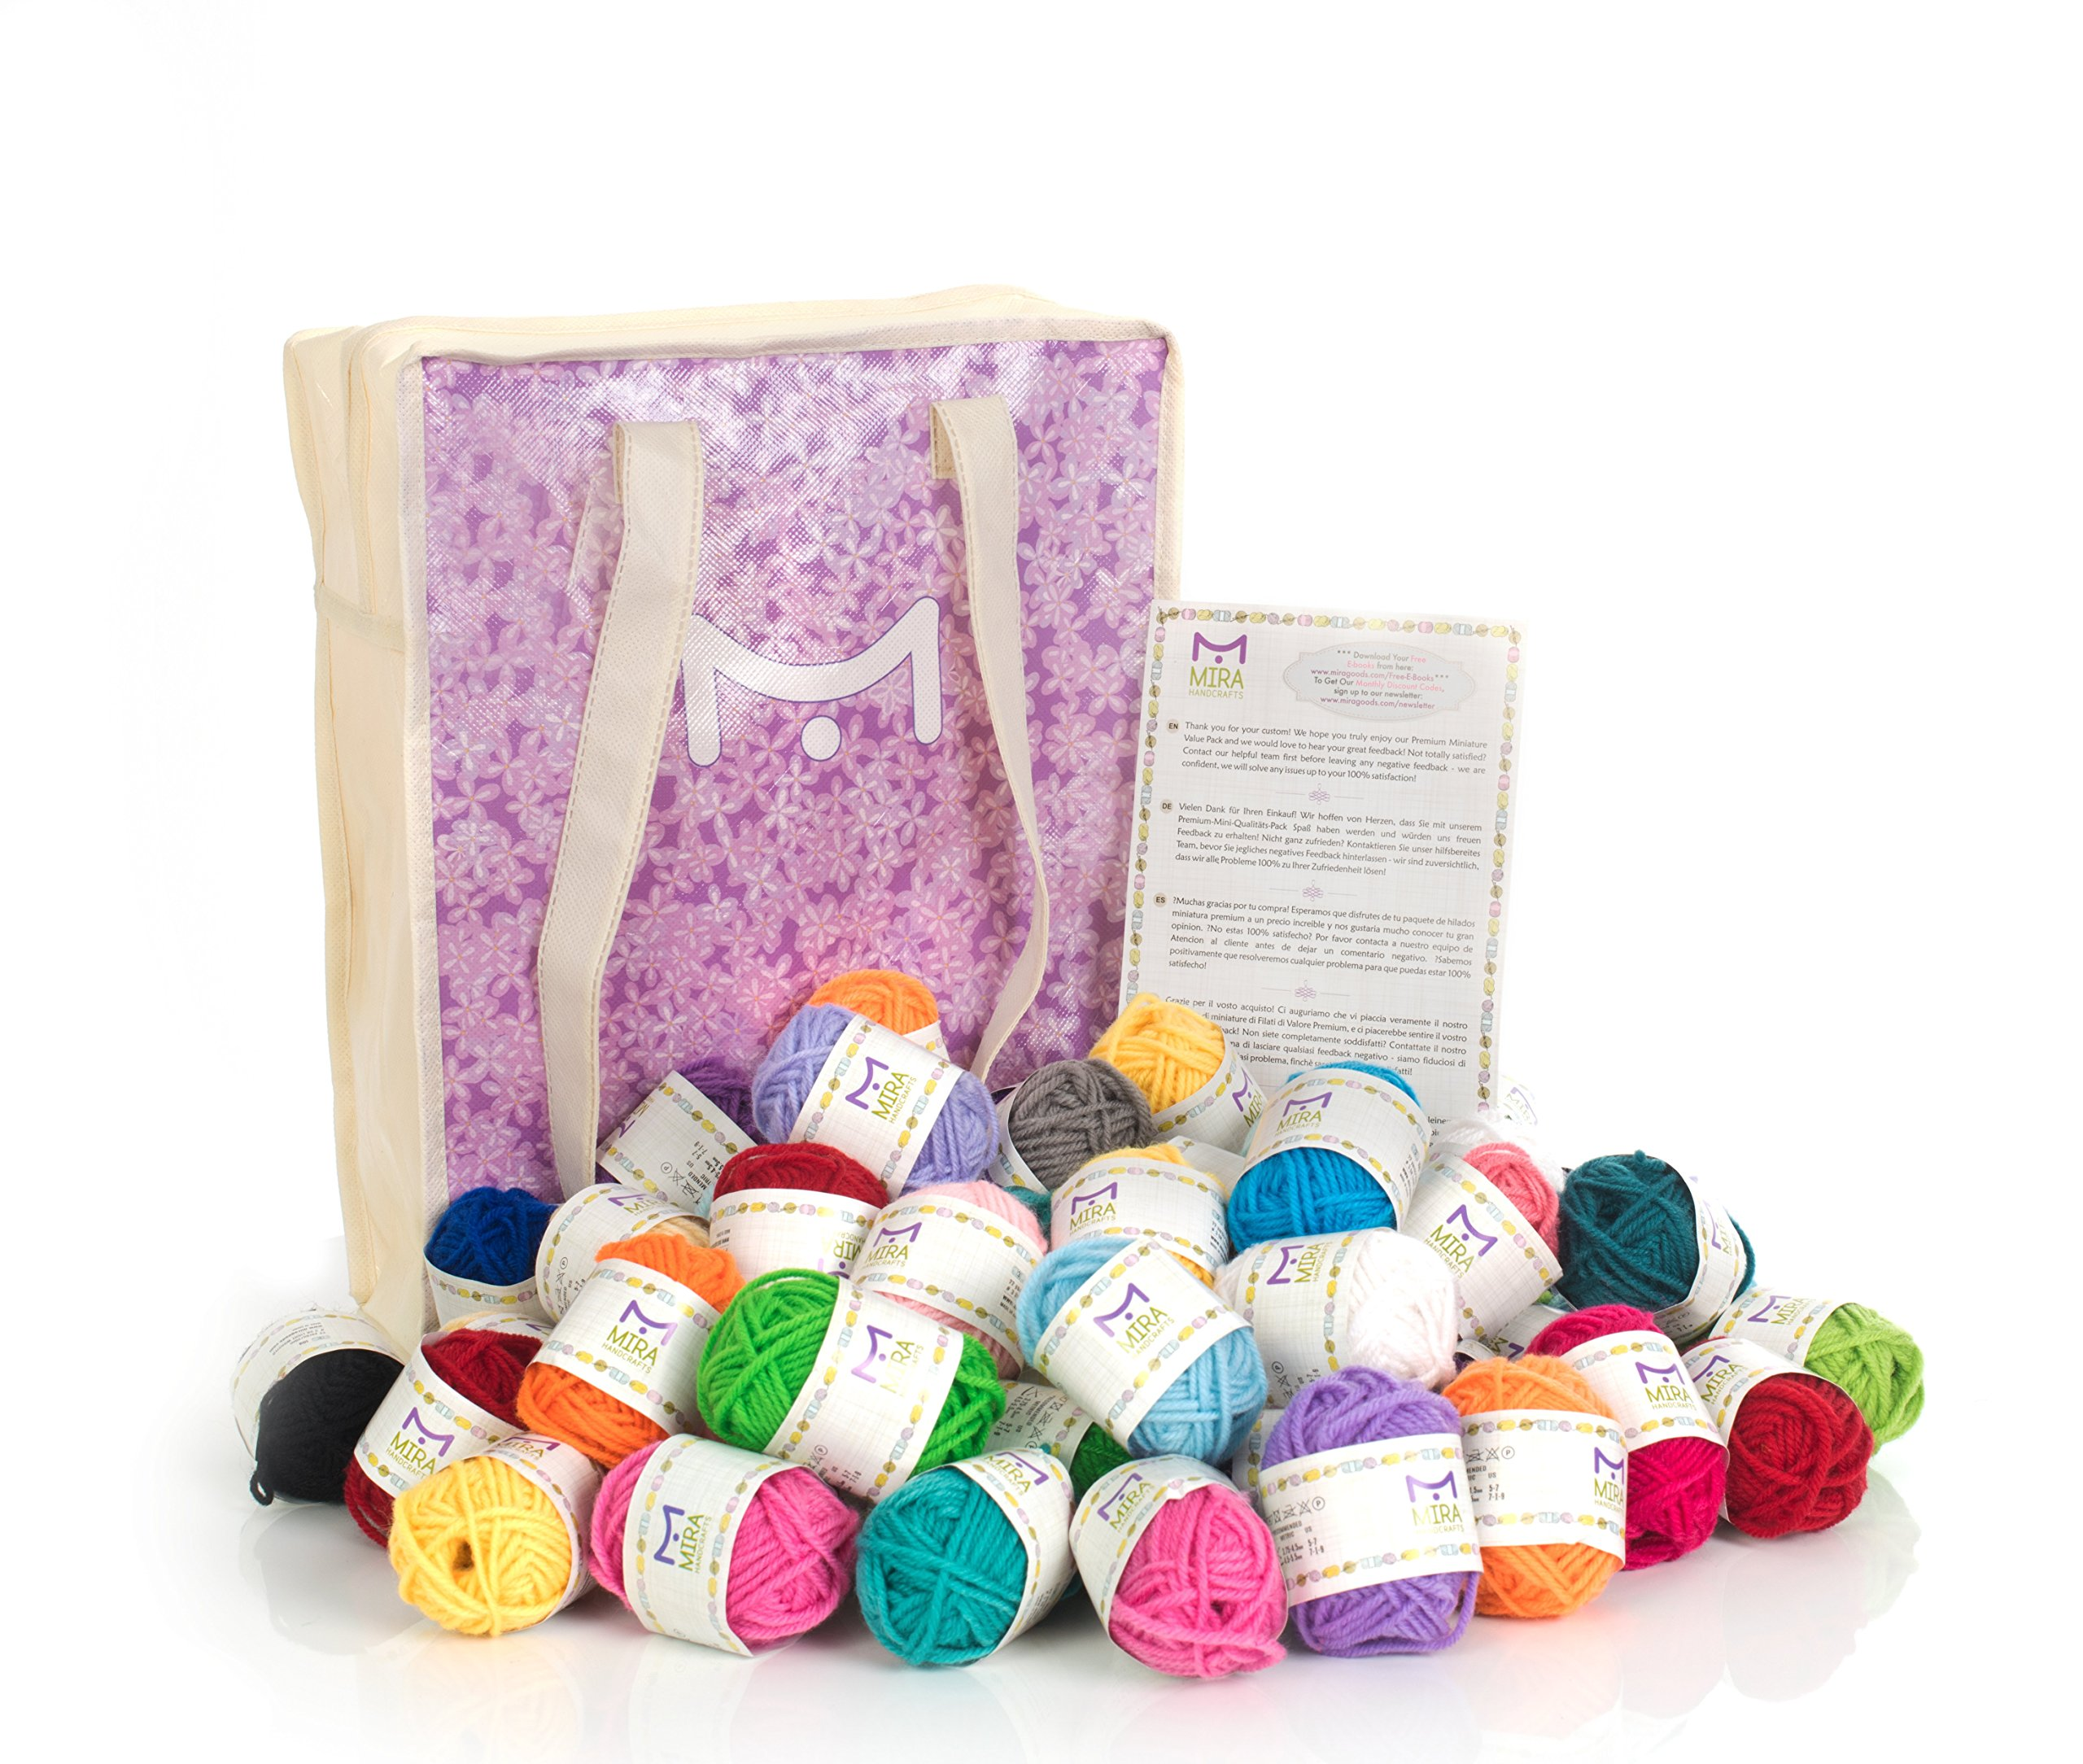 Mira Handcrafts 60 Yarn Bonbons - Total of 1312 Yard Acrylic Yarn for Knitting and Crochet - Yarn Bag for Storage and Accessories Included with Each Pack by Mira HandCrafts (Image #9)